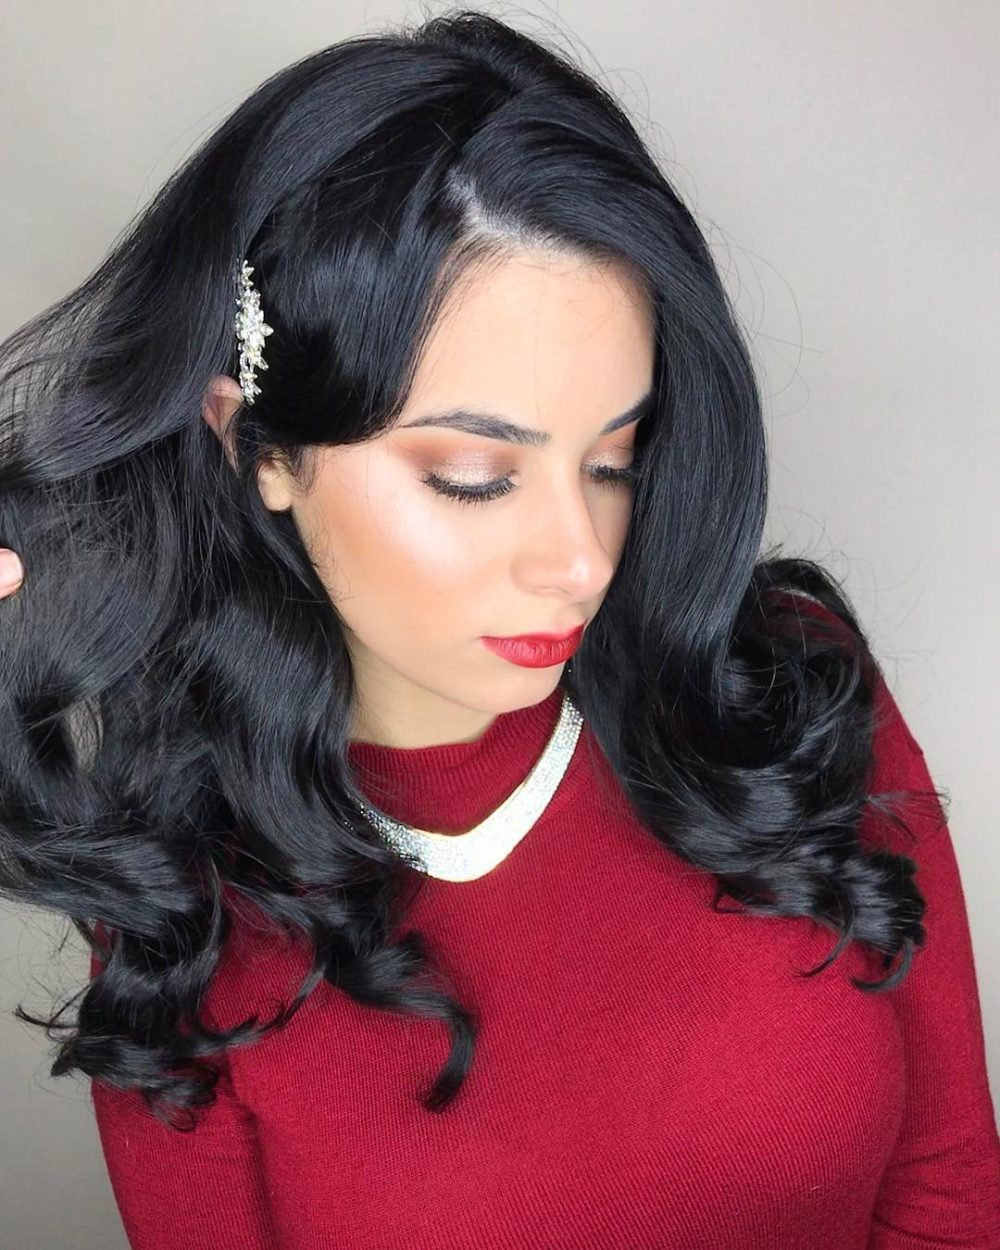 Vintage Glam hairstyle